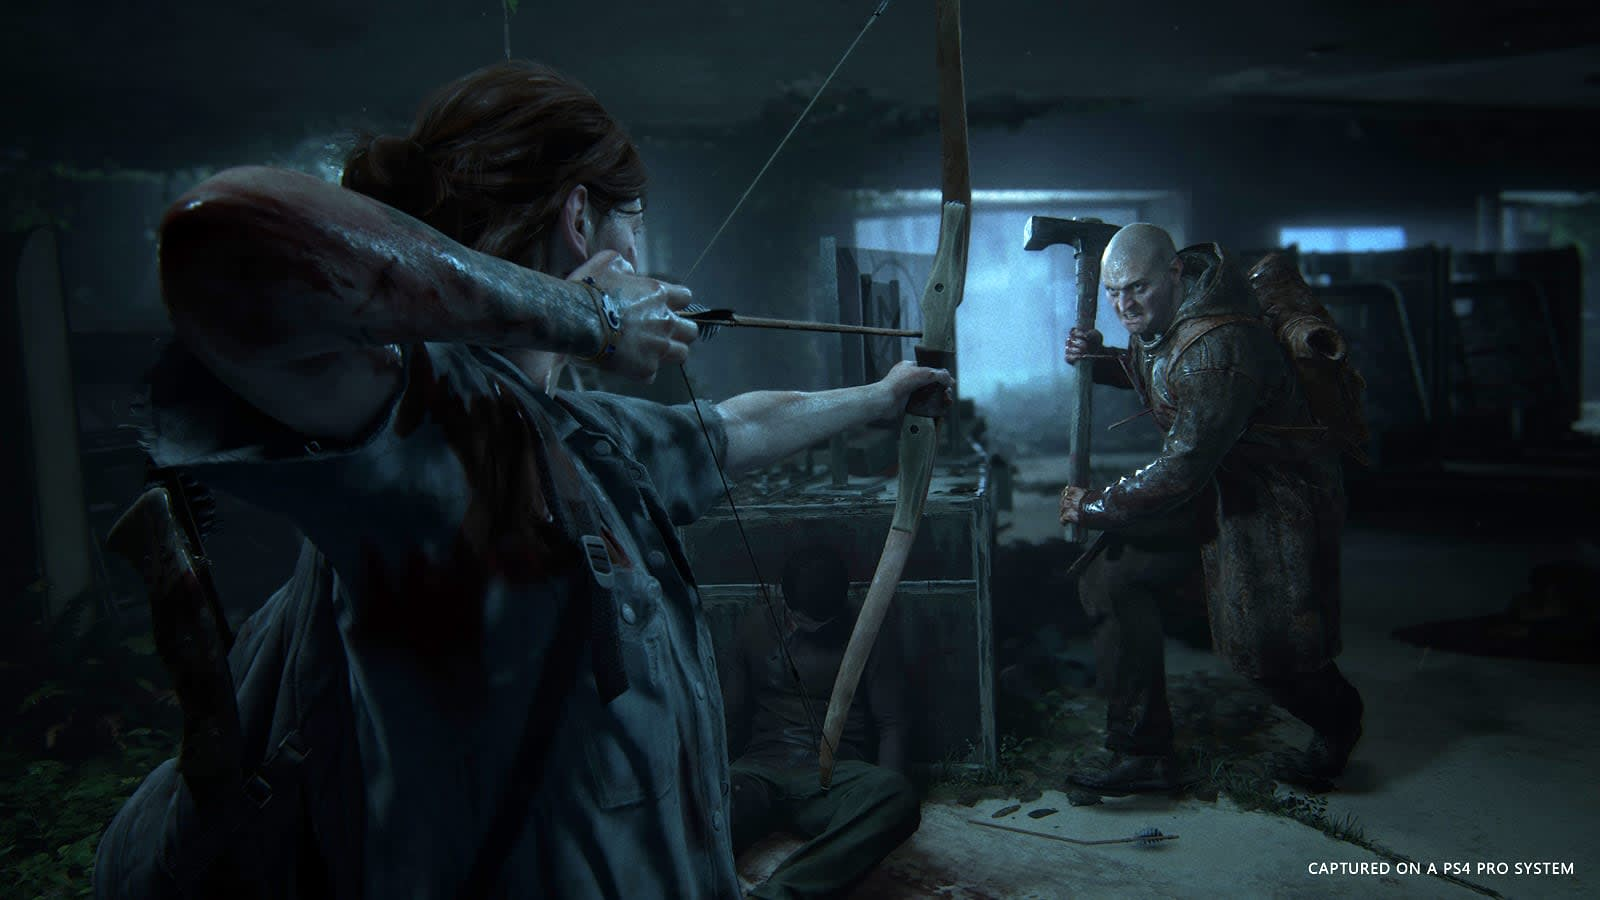 More 'The Last of Us Part II' details will emerge on